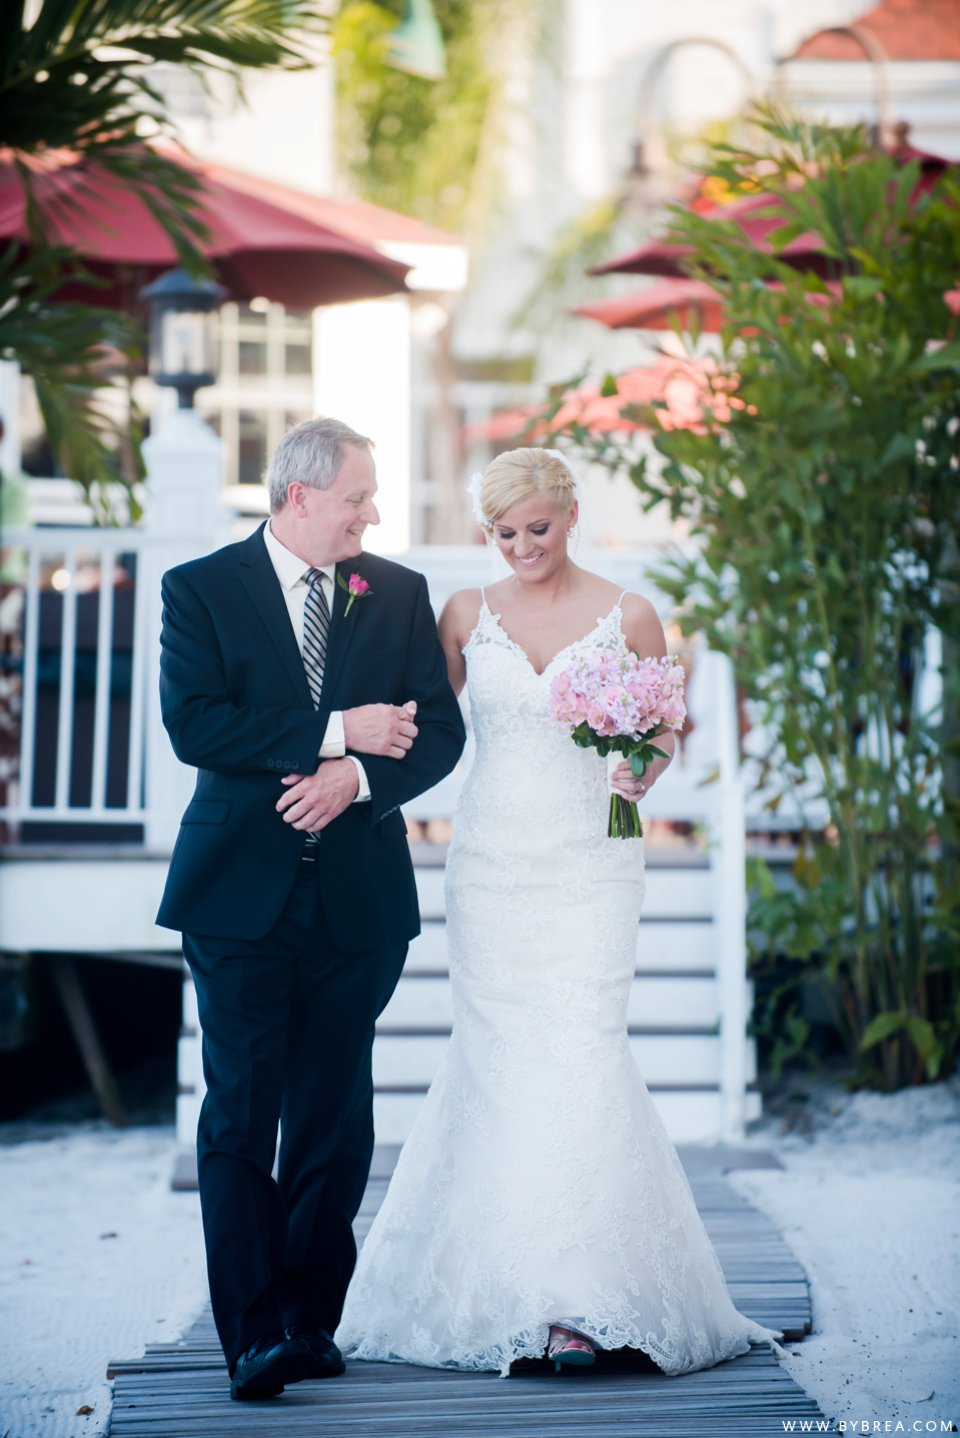 Ally Zach Chesapeake Beach Resort Spa Wedding 2118